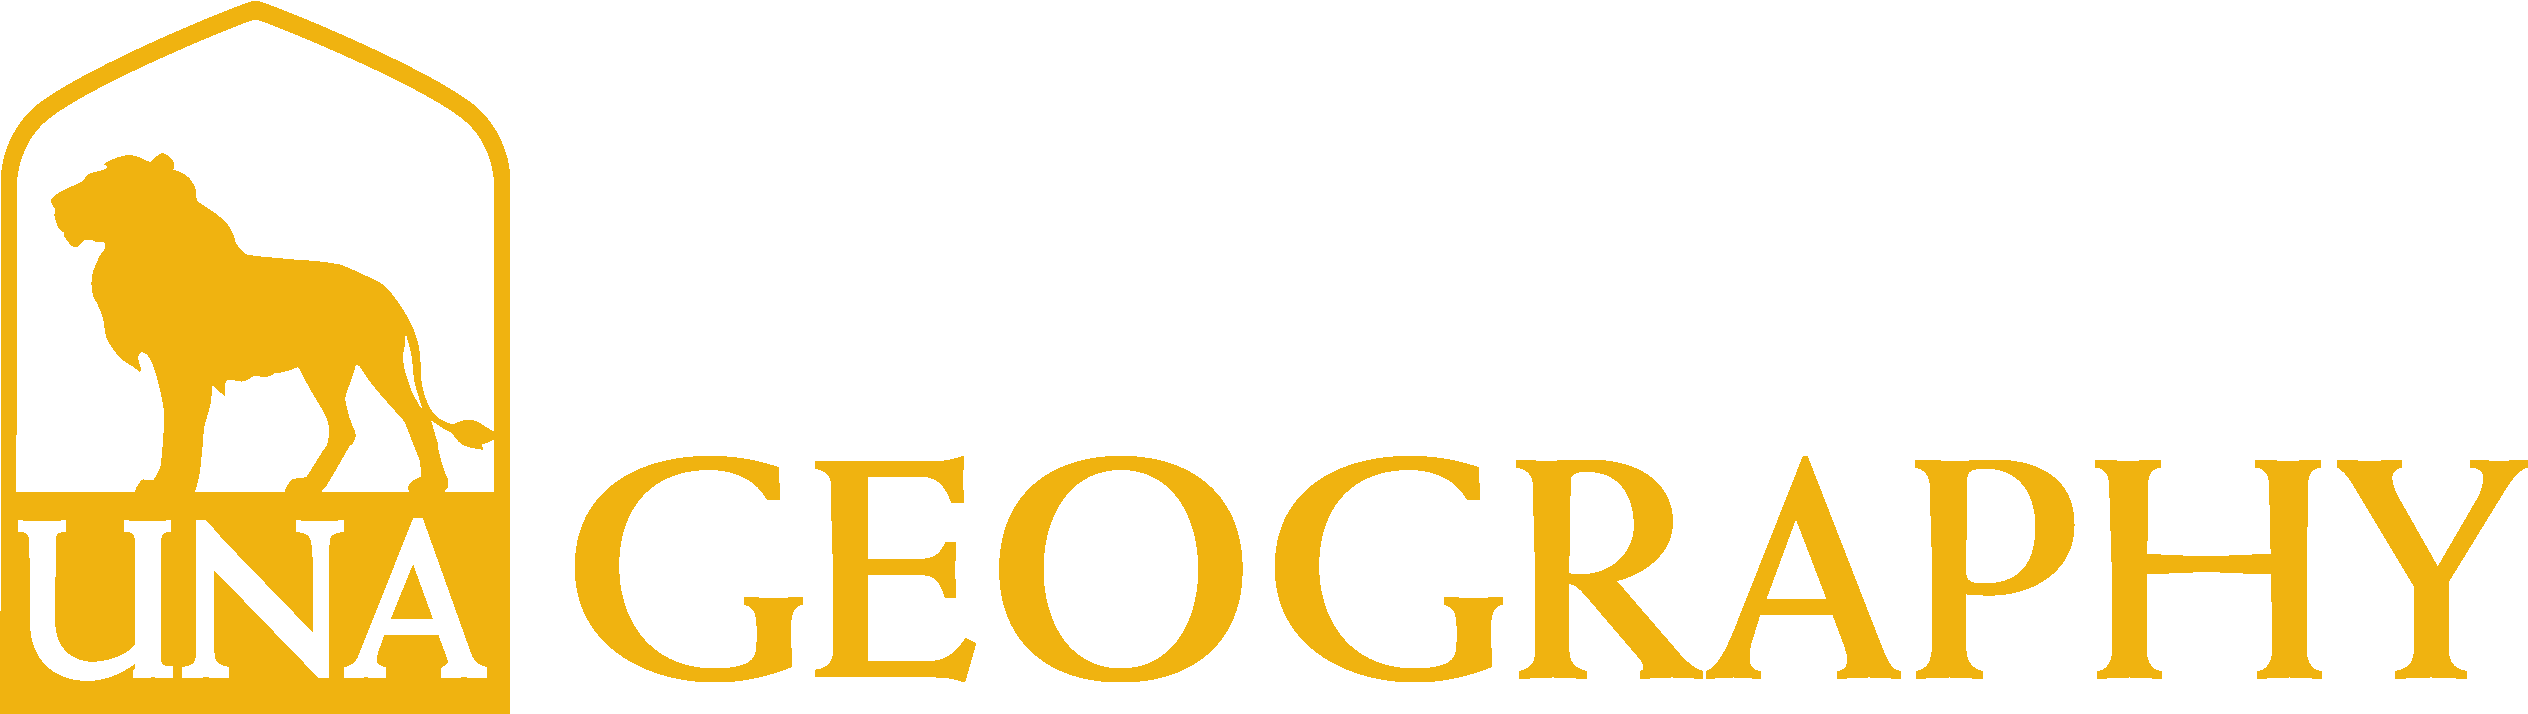 College of Arts and Sciences - Geography Logo - Gold - Version 3